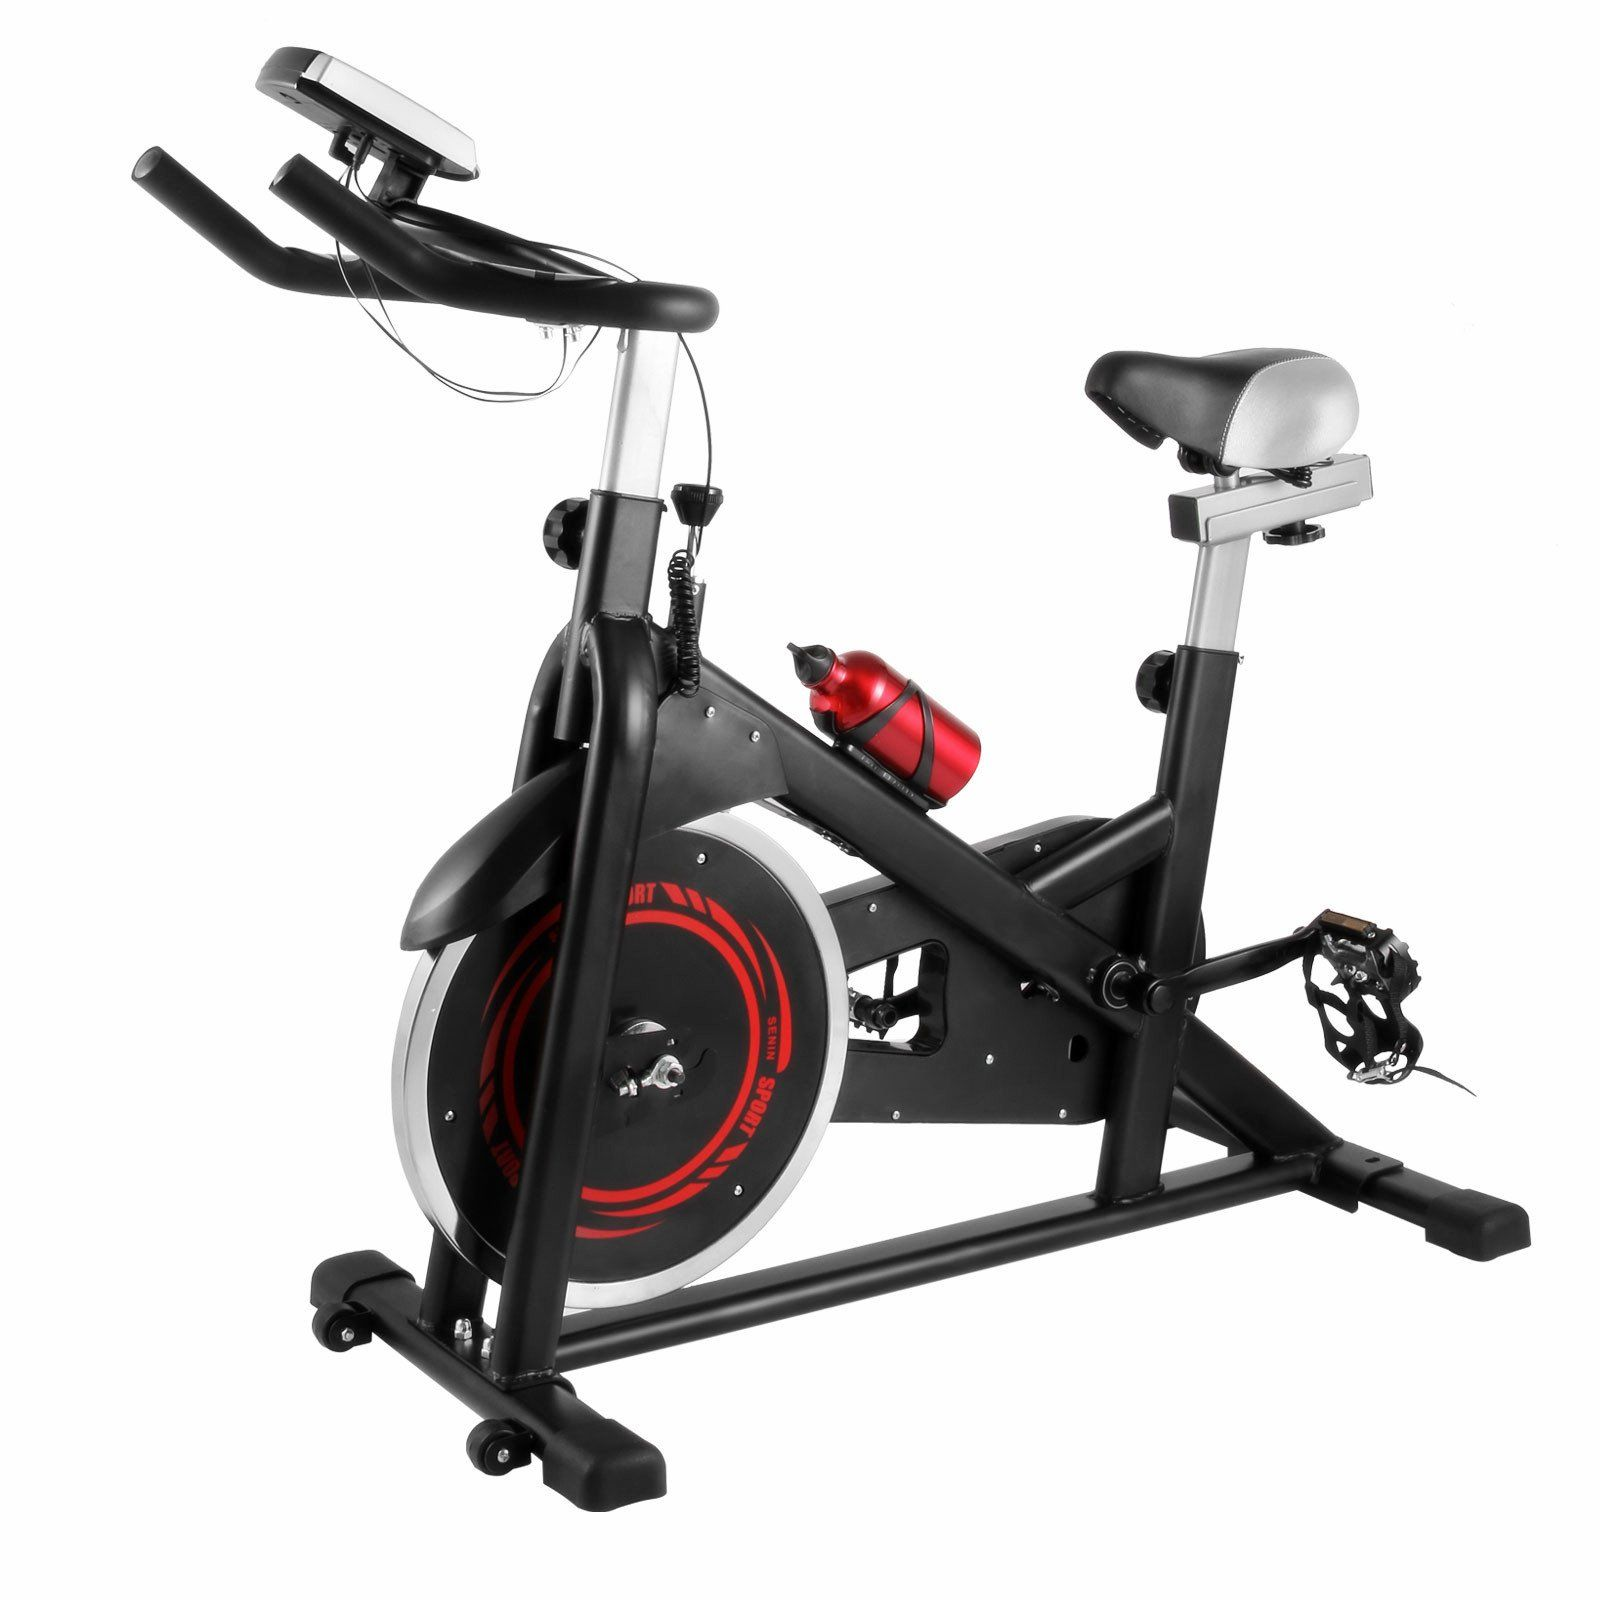 Popsport Indoor Exercise Bike Stationary Bike 330lbs Indoor Cycle Bike With Lcd Display And Water Bottle F Indoor Bike Workouts Biking Workout At Home Workouts